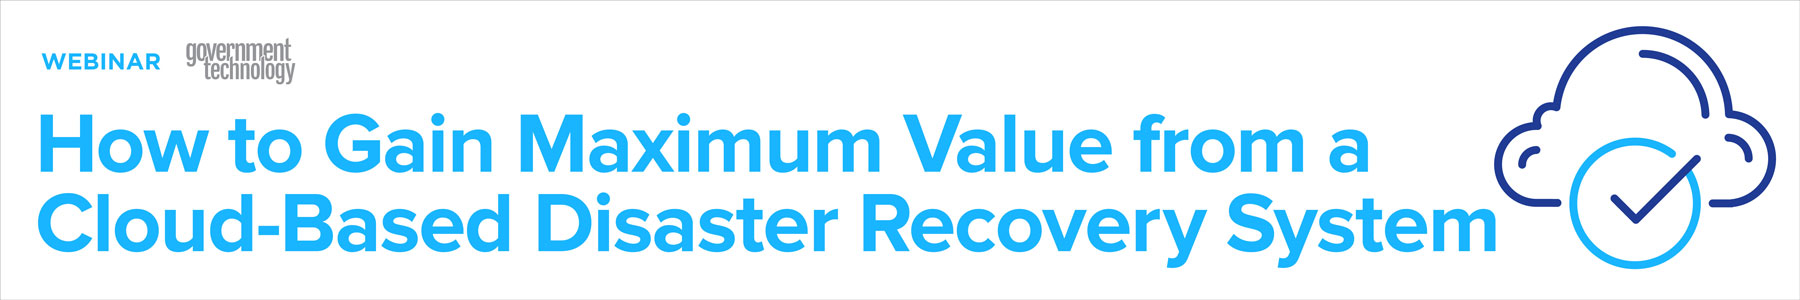 How to Gain Maximum Value from a Cloud-Based Disaster Recovery System